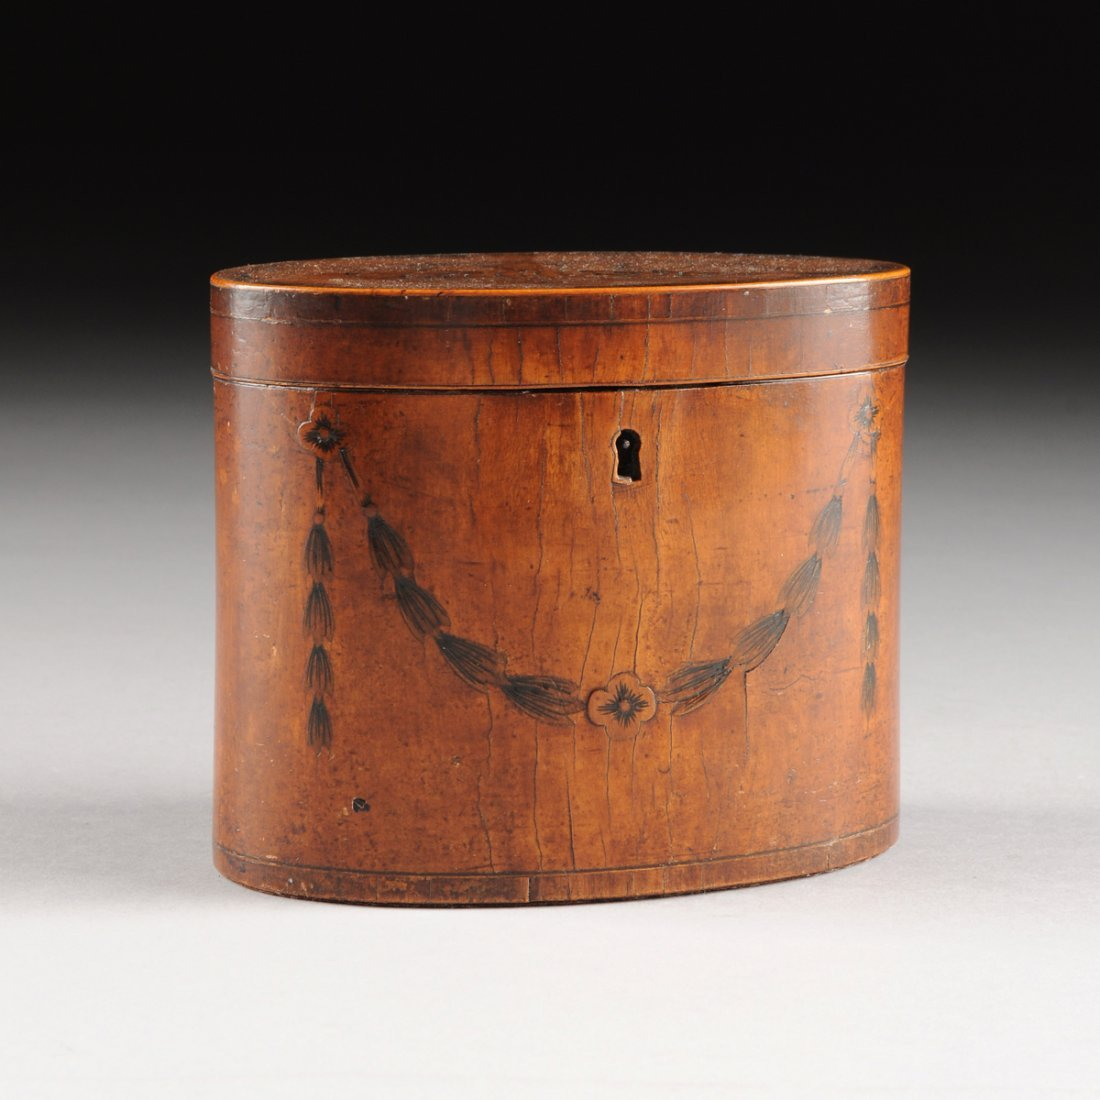 A GEORGE III MARQUETRY INLAID SATINWOOD TEA CADDY, LATE